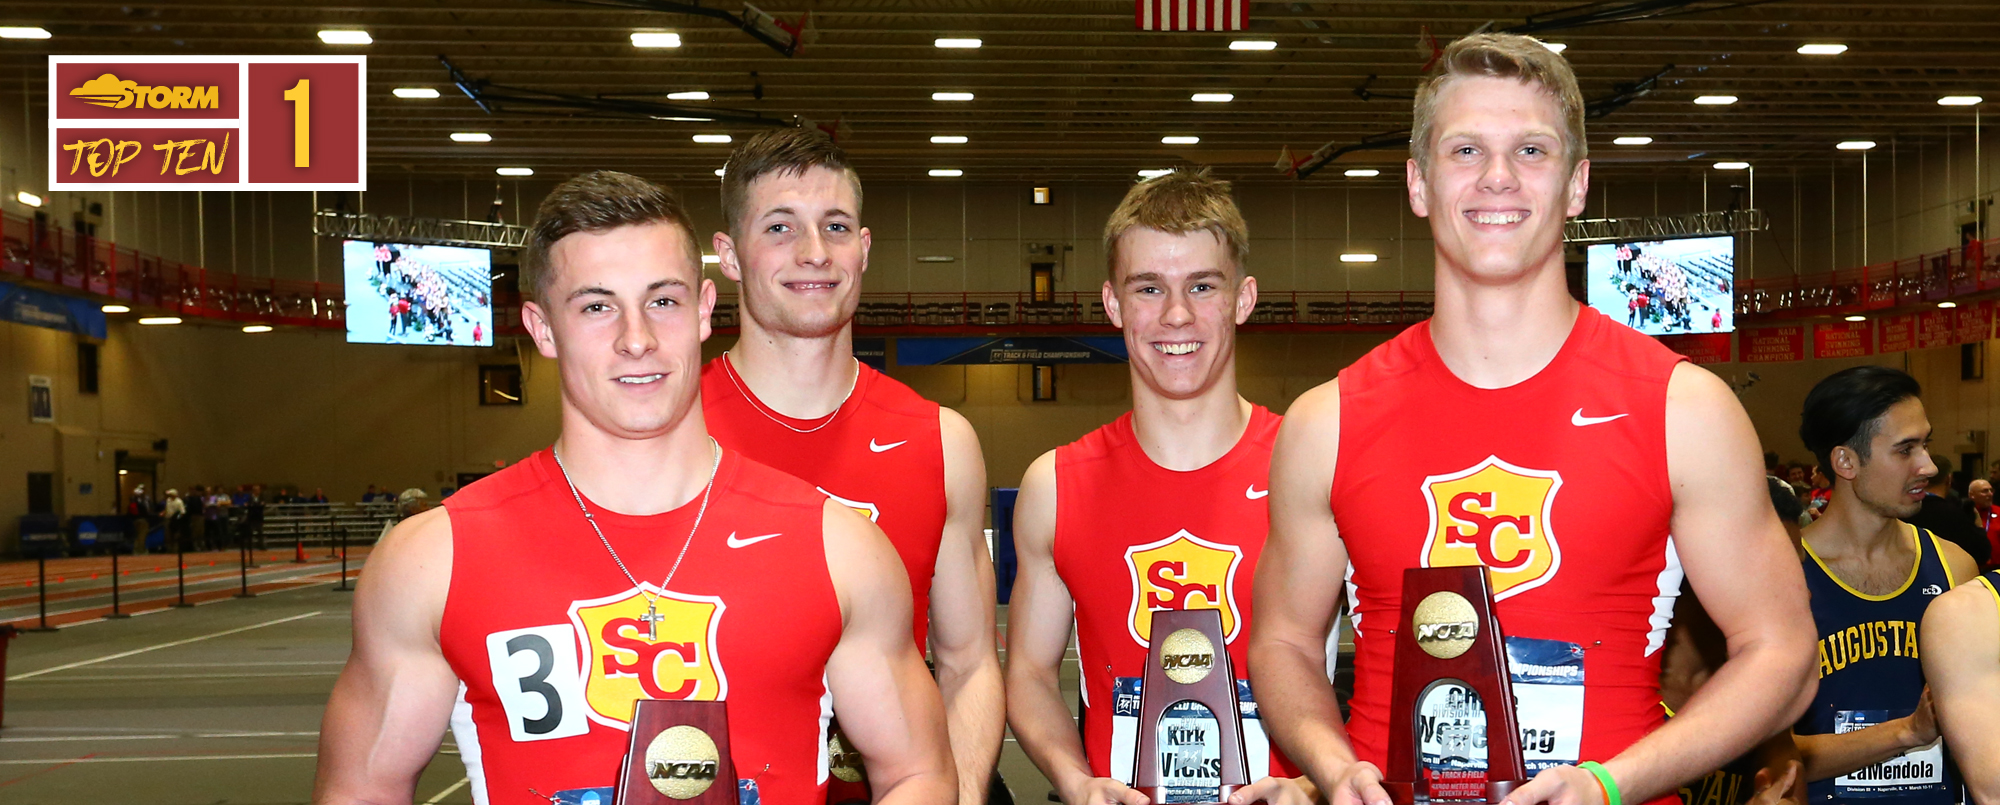 The All-American 4x400 relay team of Travis Tupper, Jordan Coughenour, Kirk Wicks and Chase Wetterling